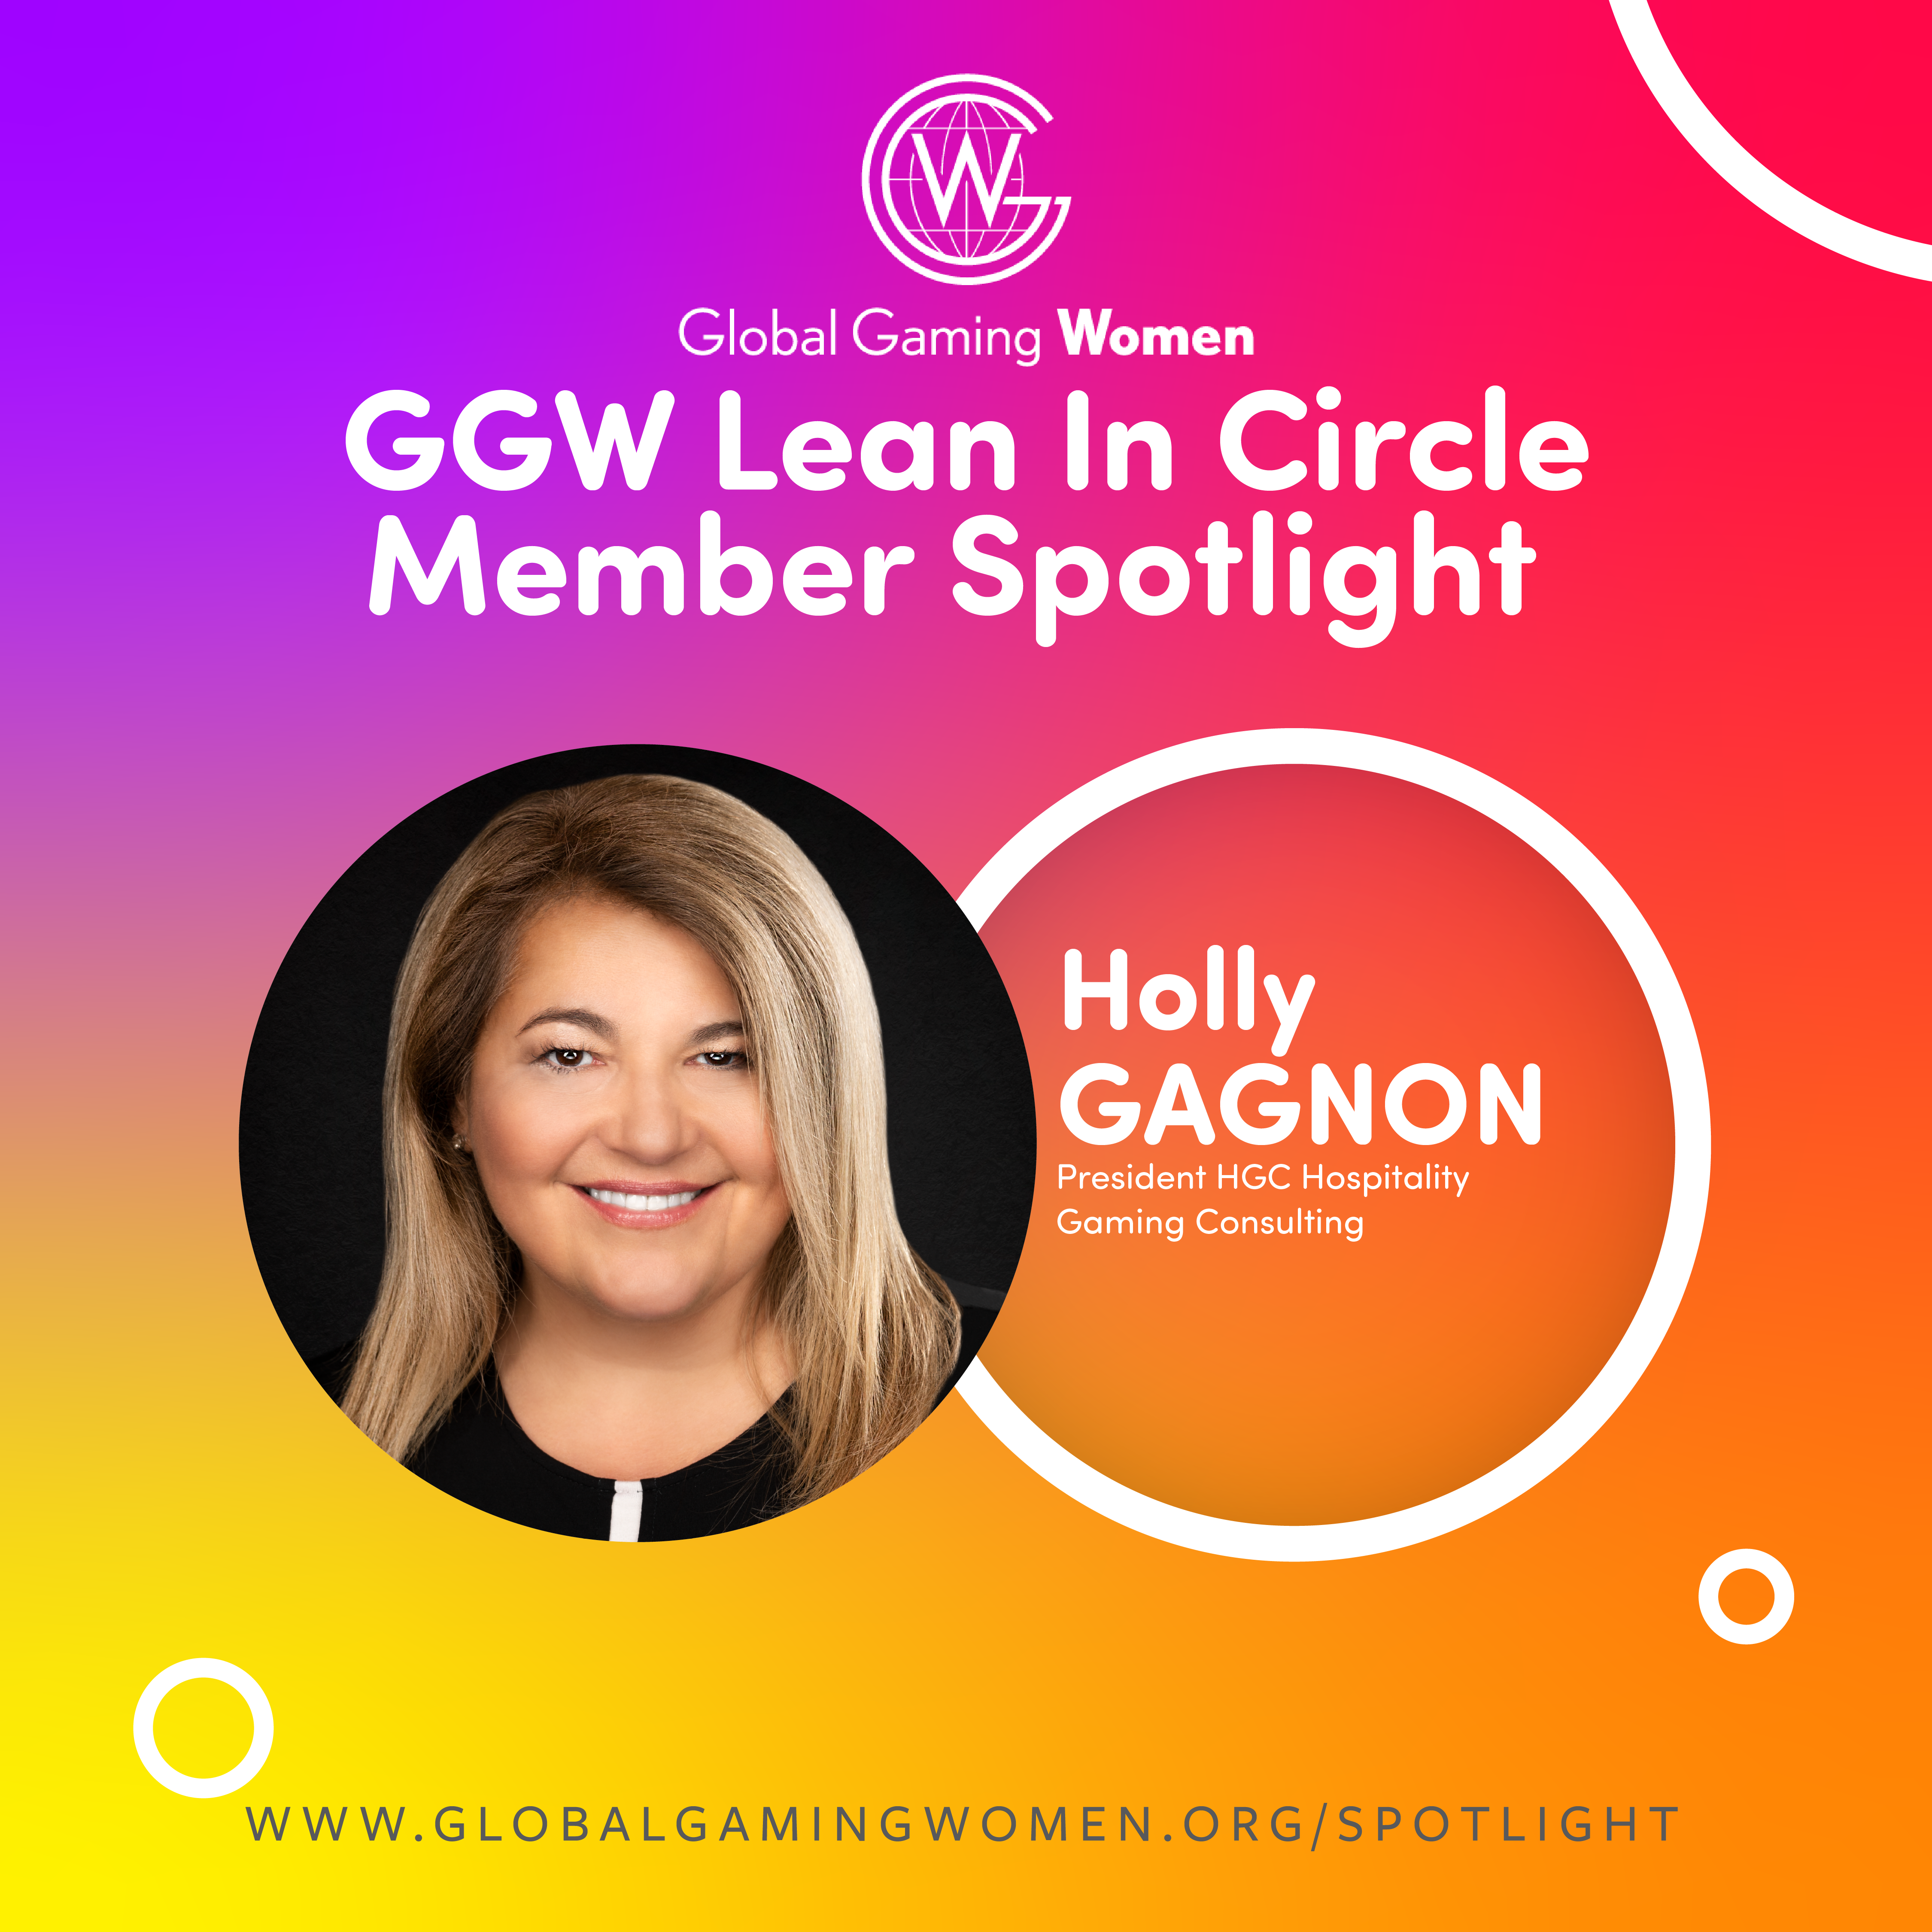 Member Spotlight: Holly Gagnon